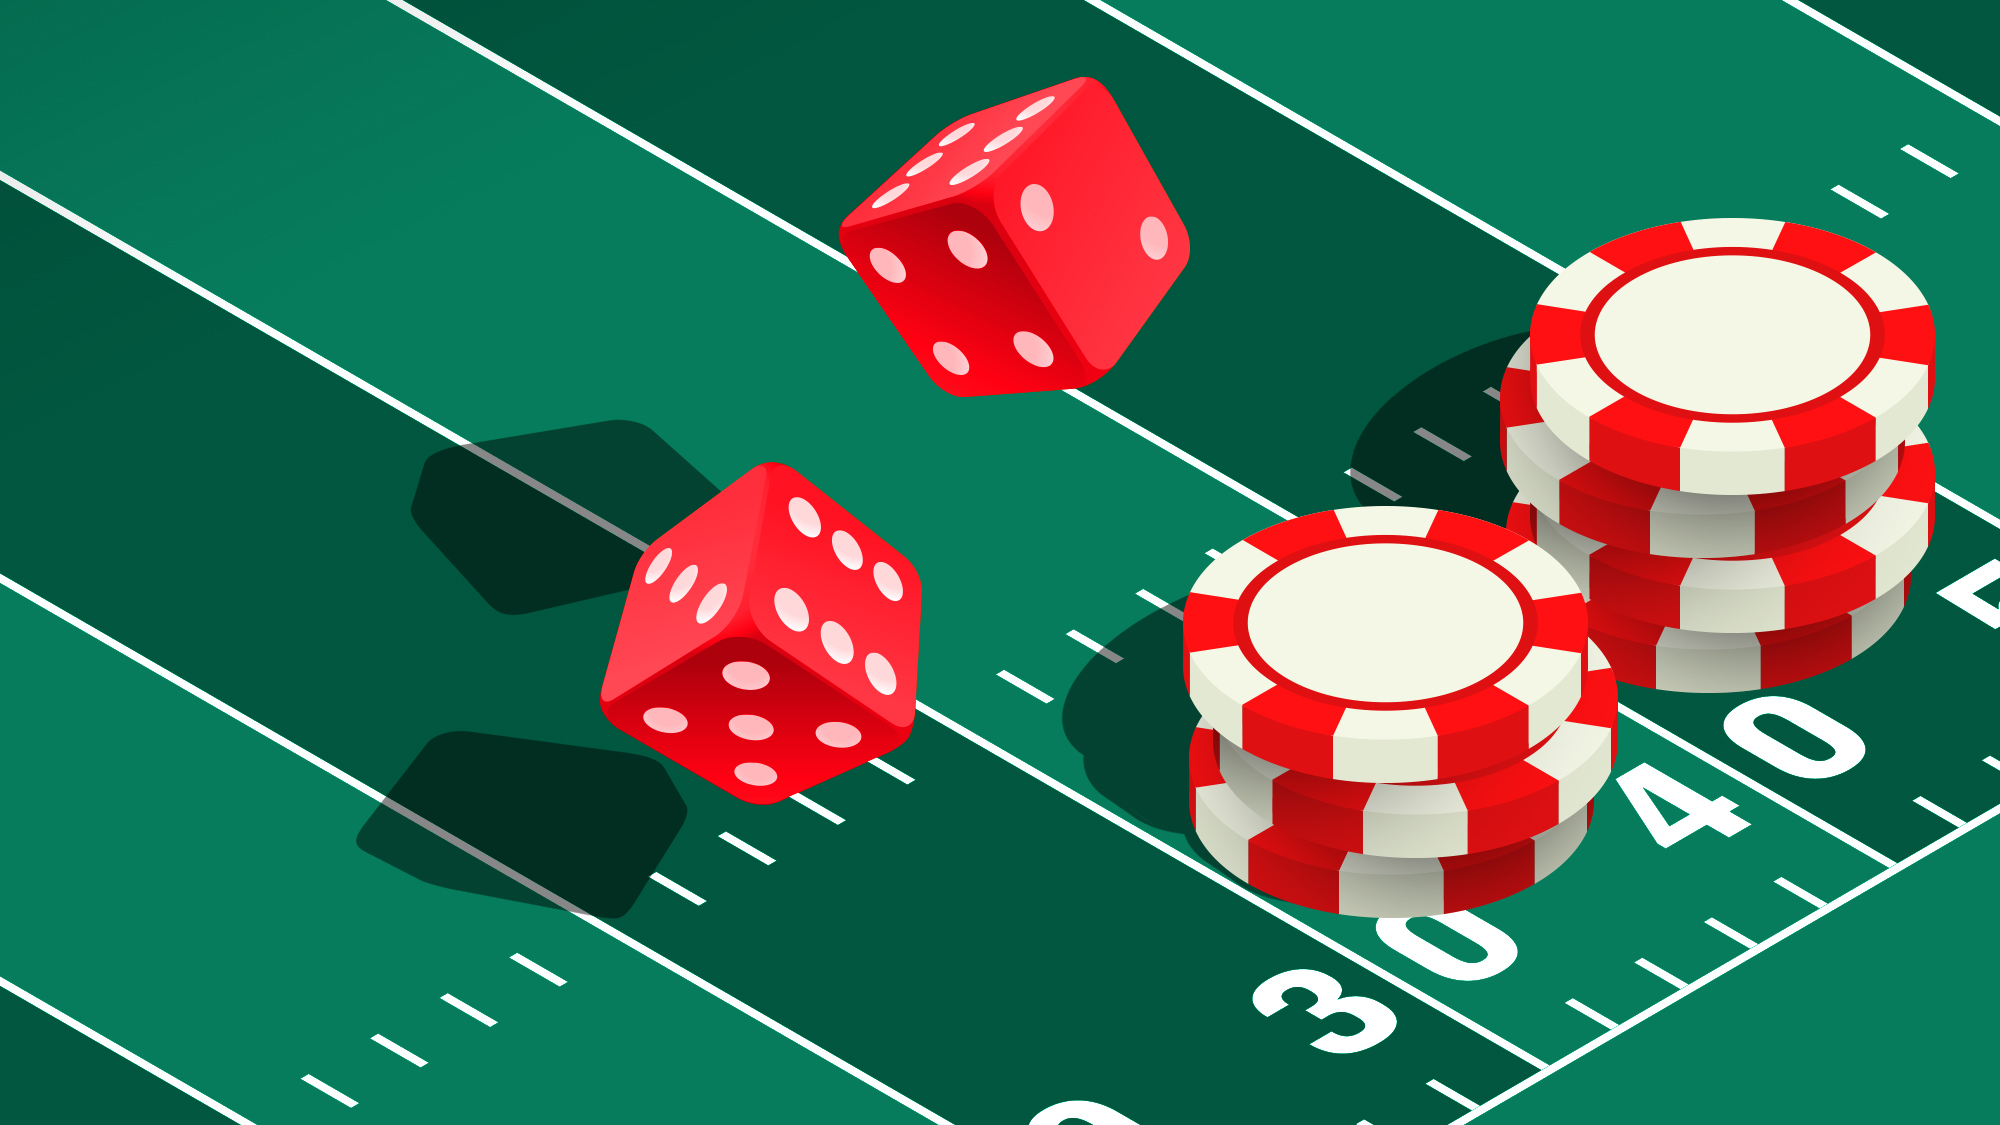 Sports Betting: Media's Growing Interest in Legalized Gambling - Variety